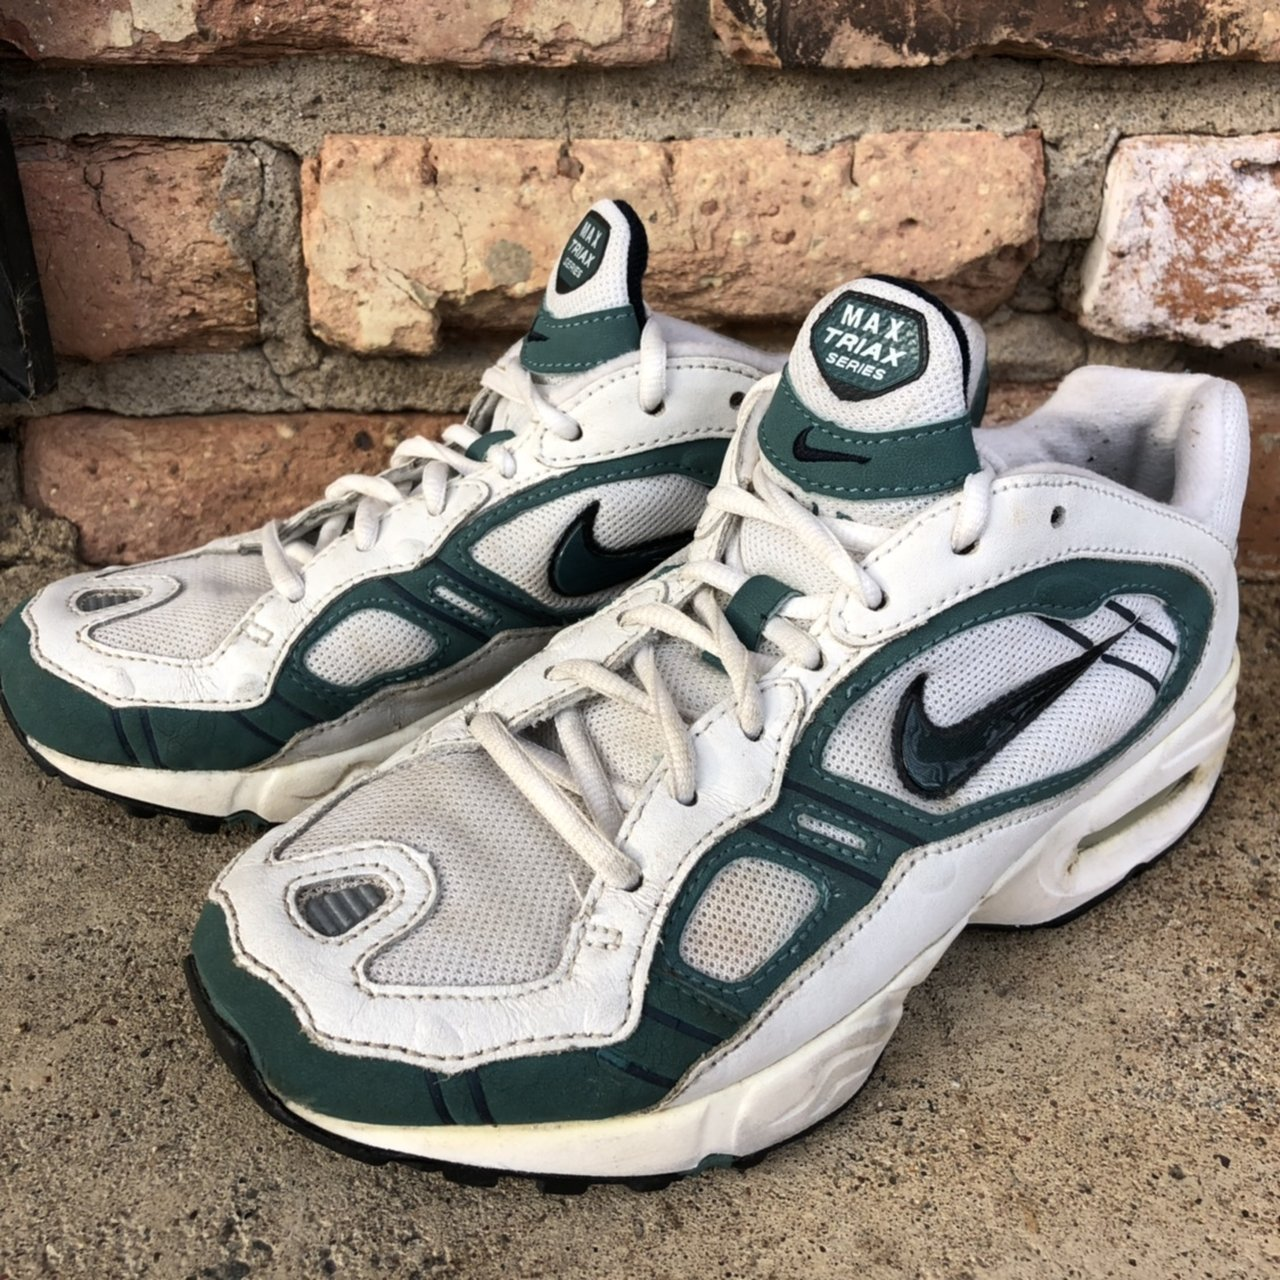 2c0b89d87cc can t believe we re selling these😭Nike Air Max Triax 98 in - Depop